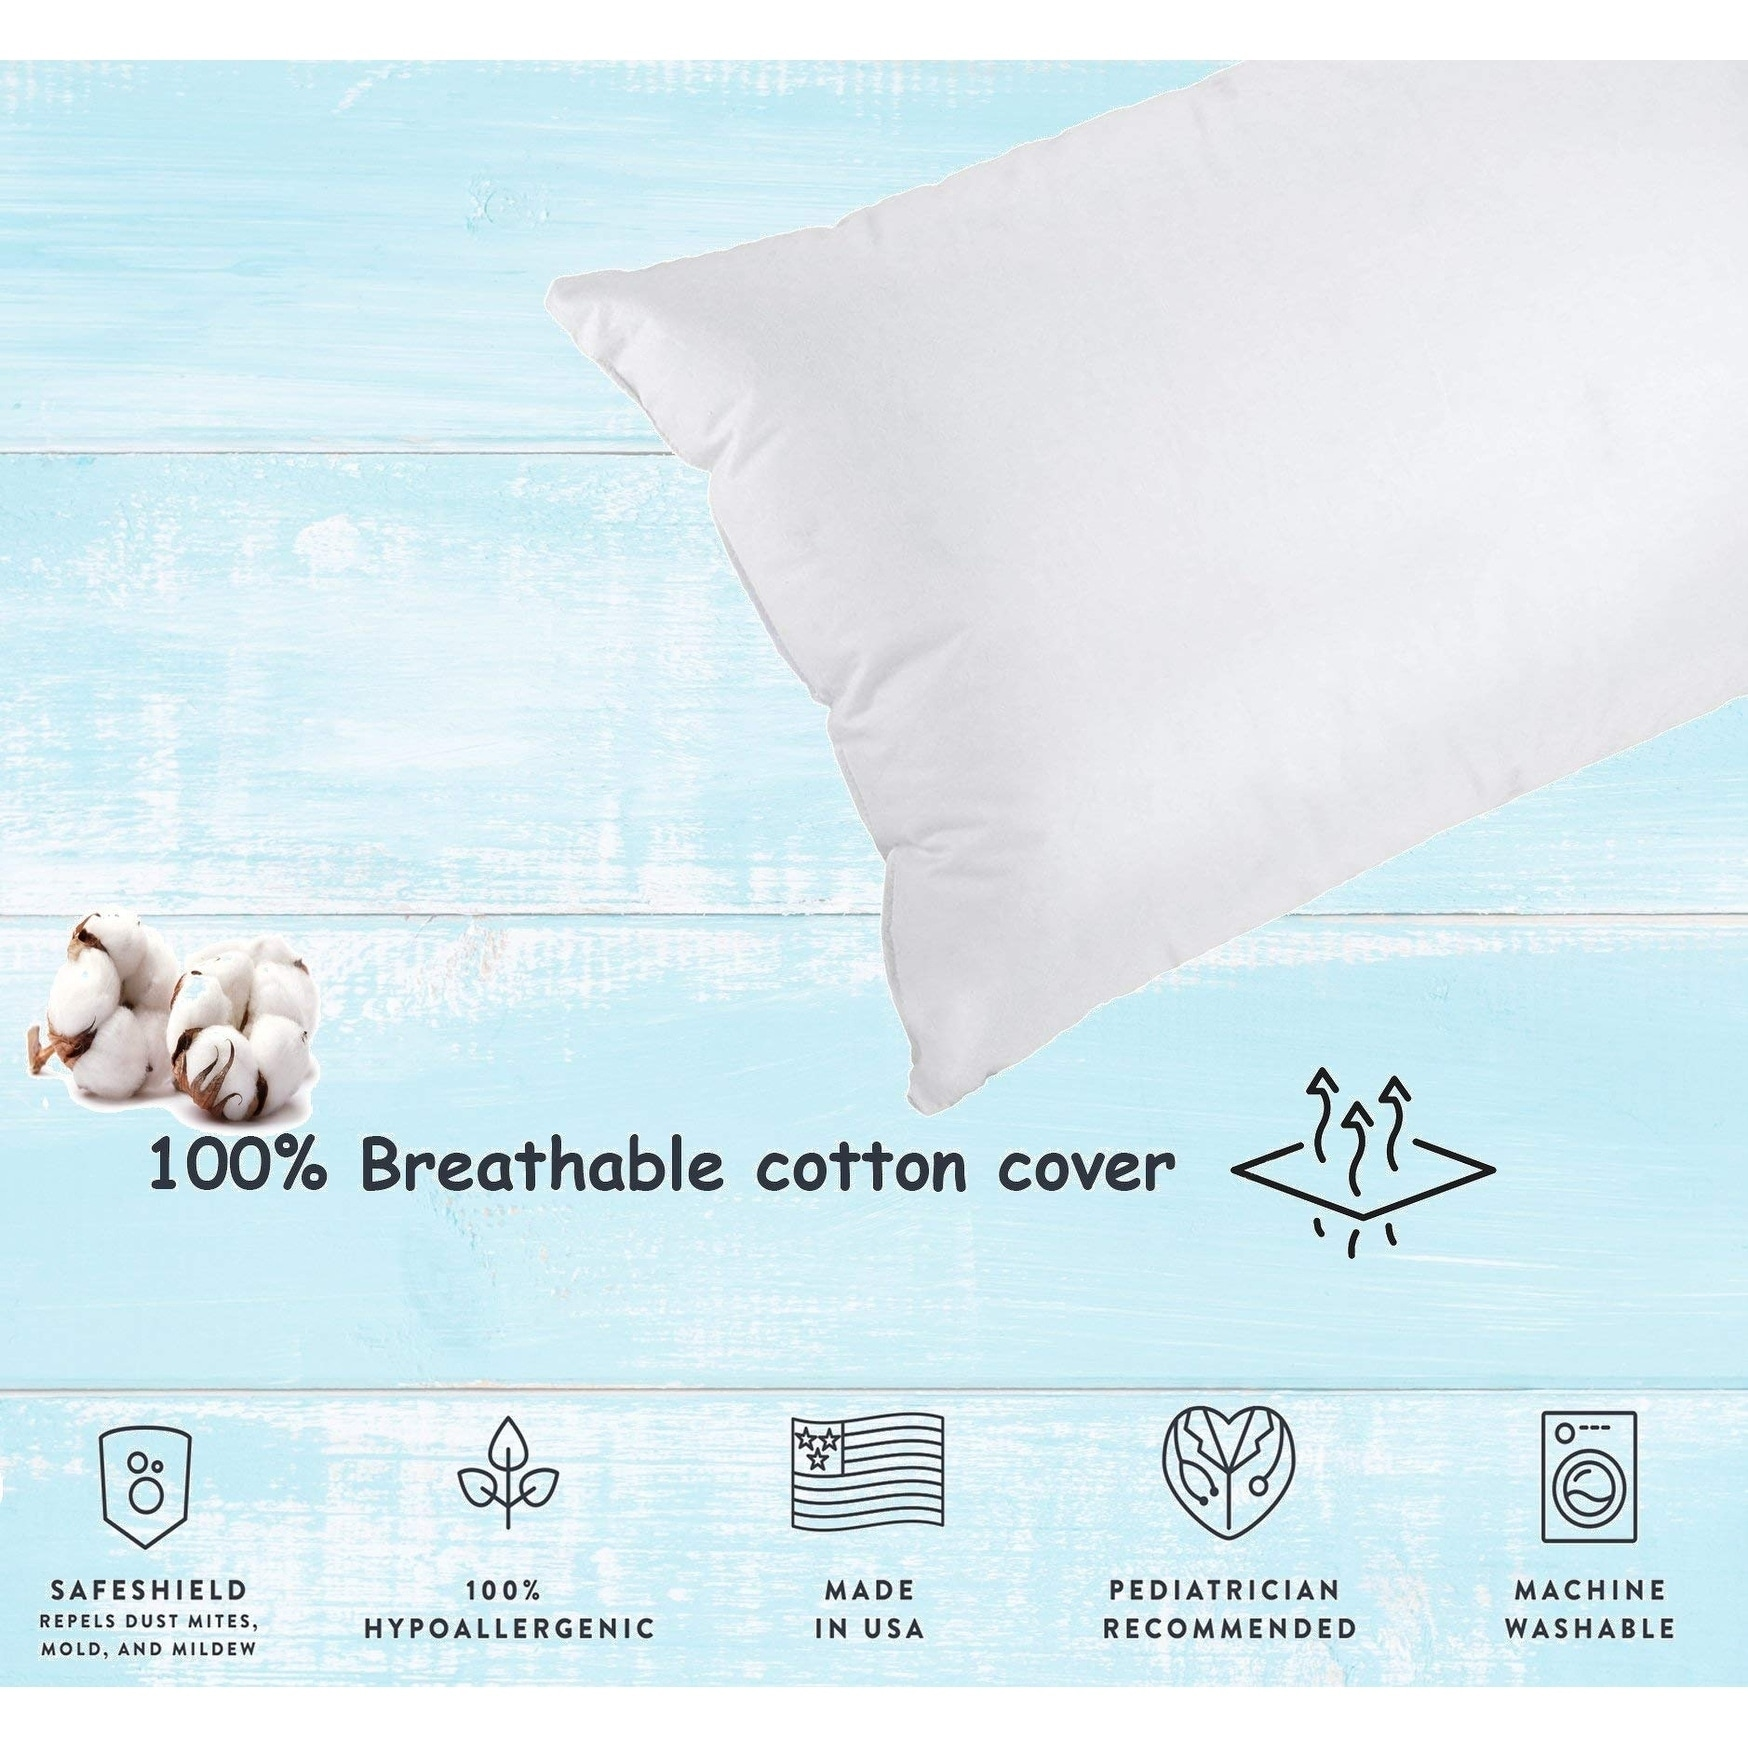 Pediatrician Recommended 12 X 16 Toddler Pillow Machine Washable Non-allergenic Made in USA!